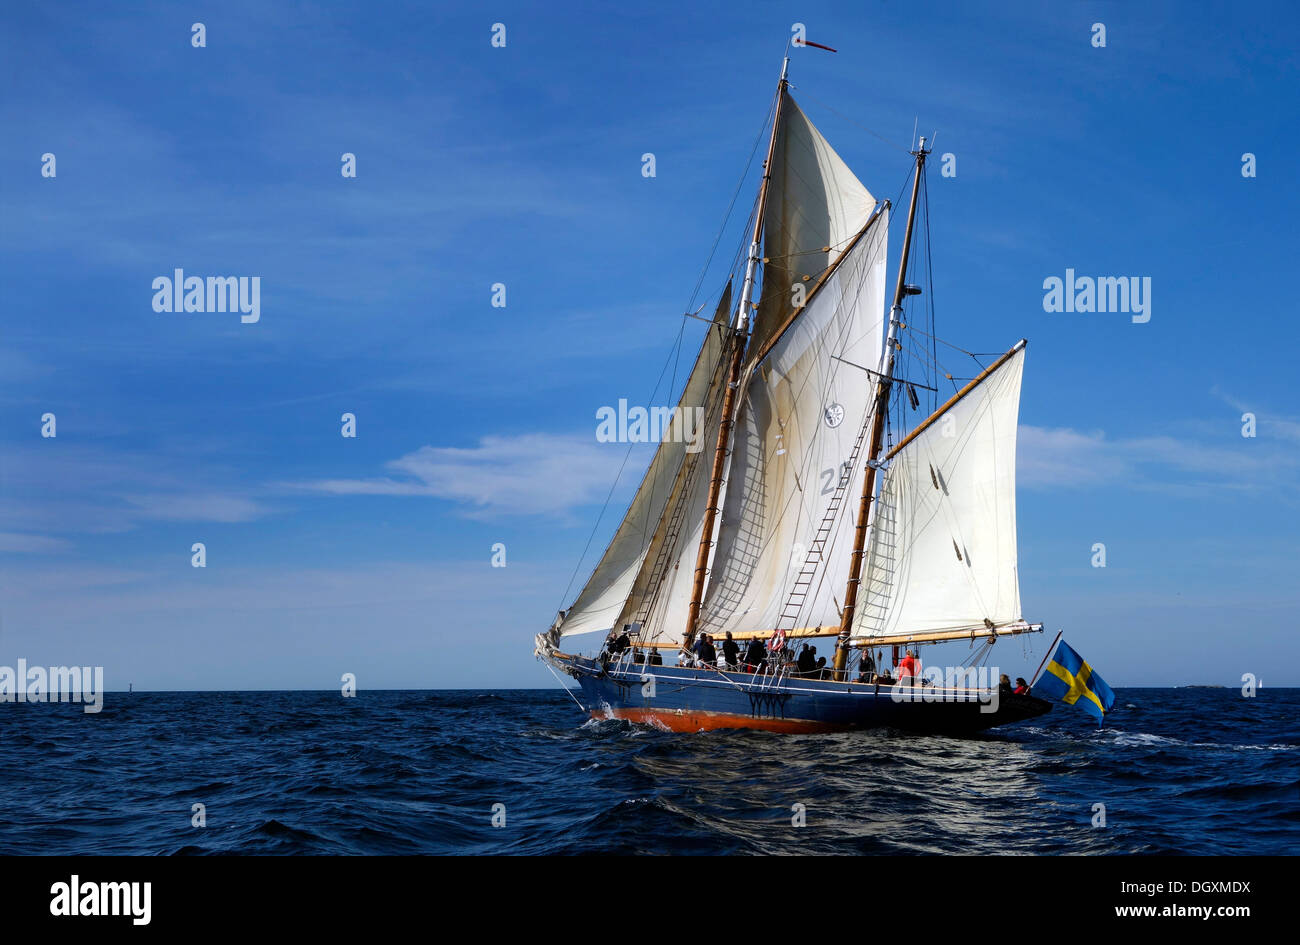 A double-gaff ketch under sail. Stock Photo